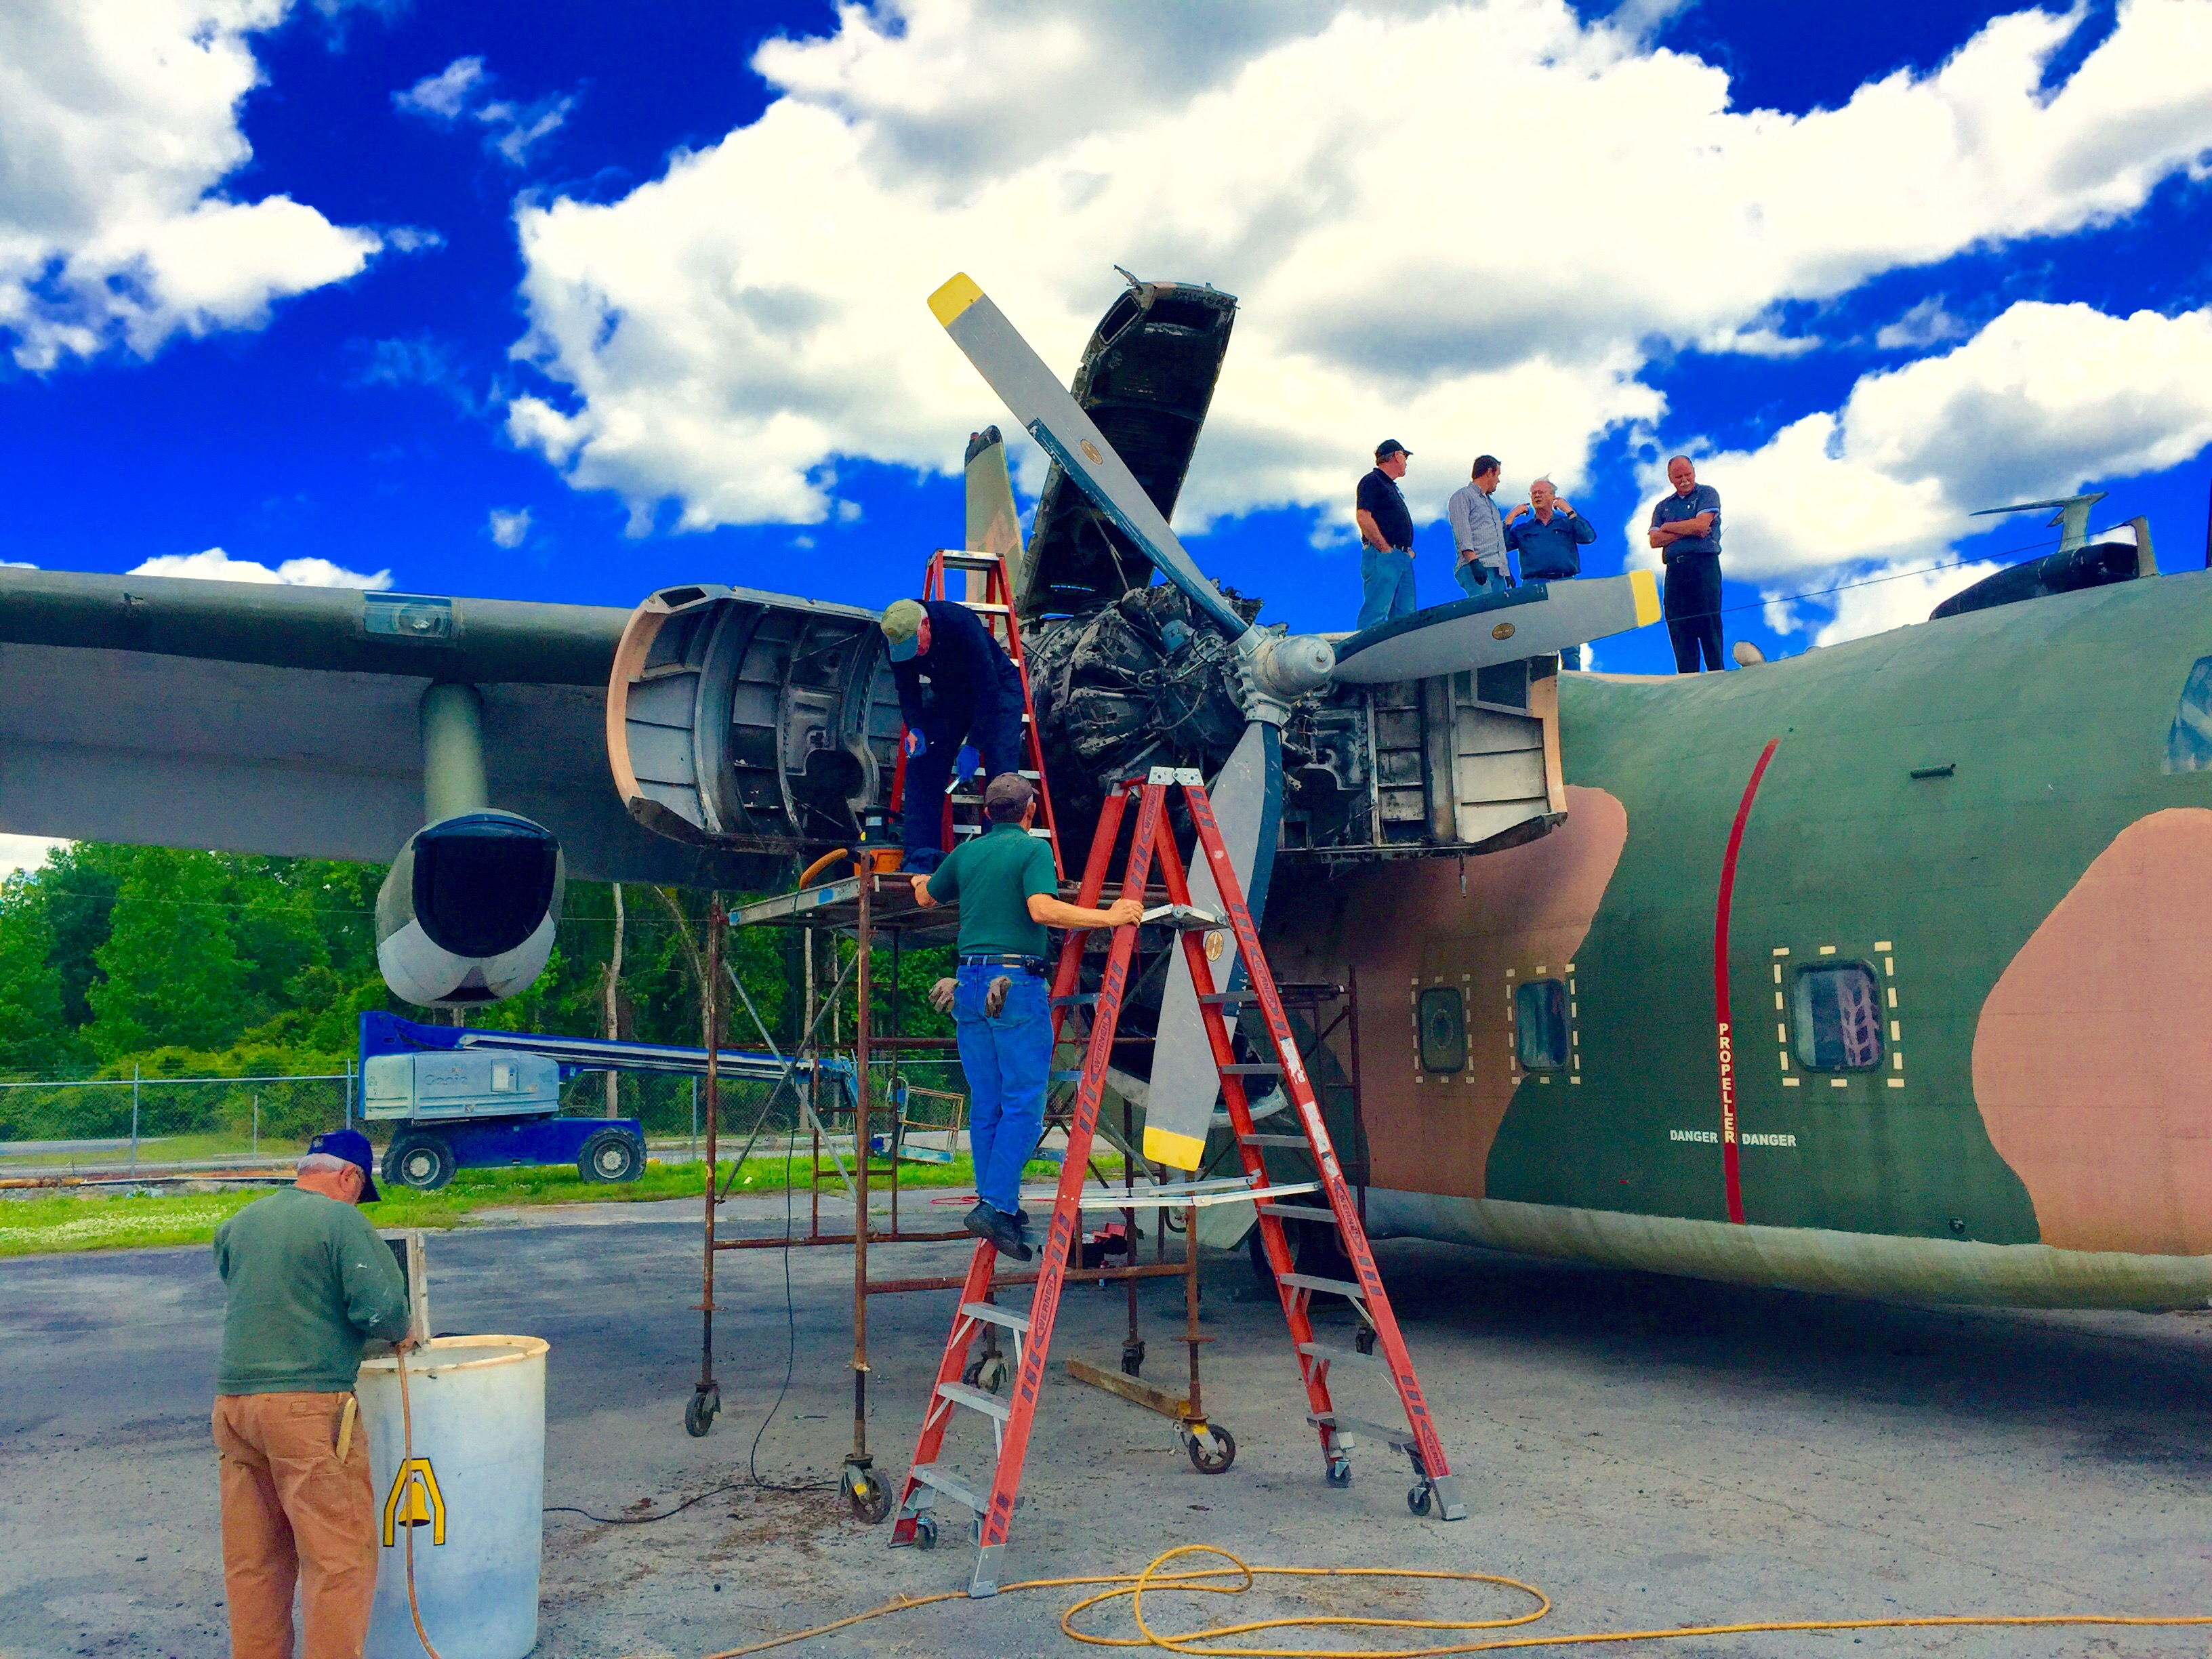 The crew from Warriors & Warbirds working on their C-123K Provider, Ponderous Polly, in April during a trip from their home base in Monroe to New Bern, North Carolina (where Polly is currently stuck). (photo by Joseph Atkins)